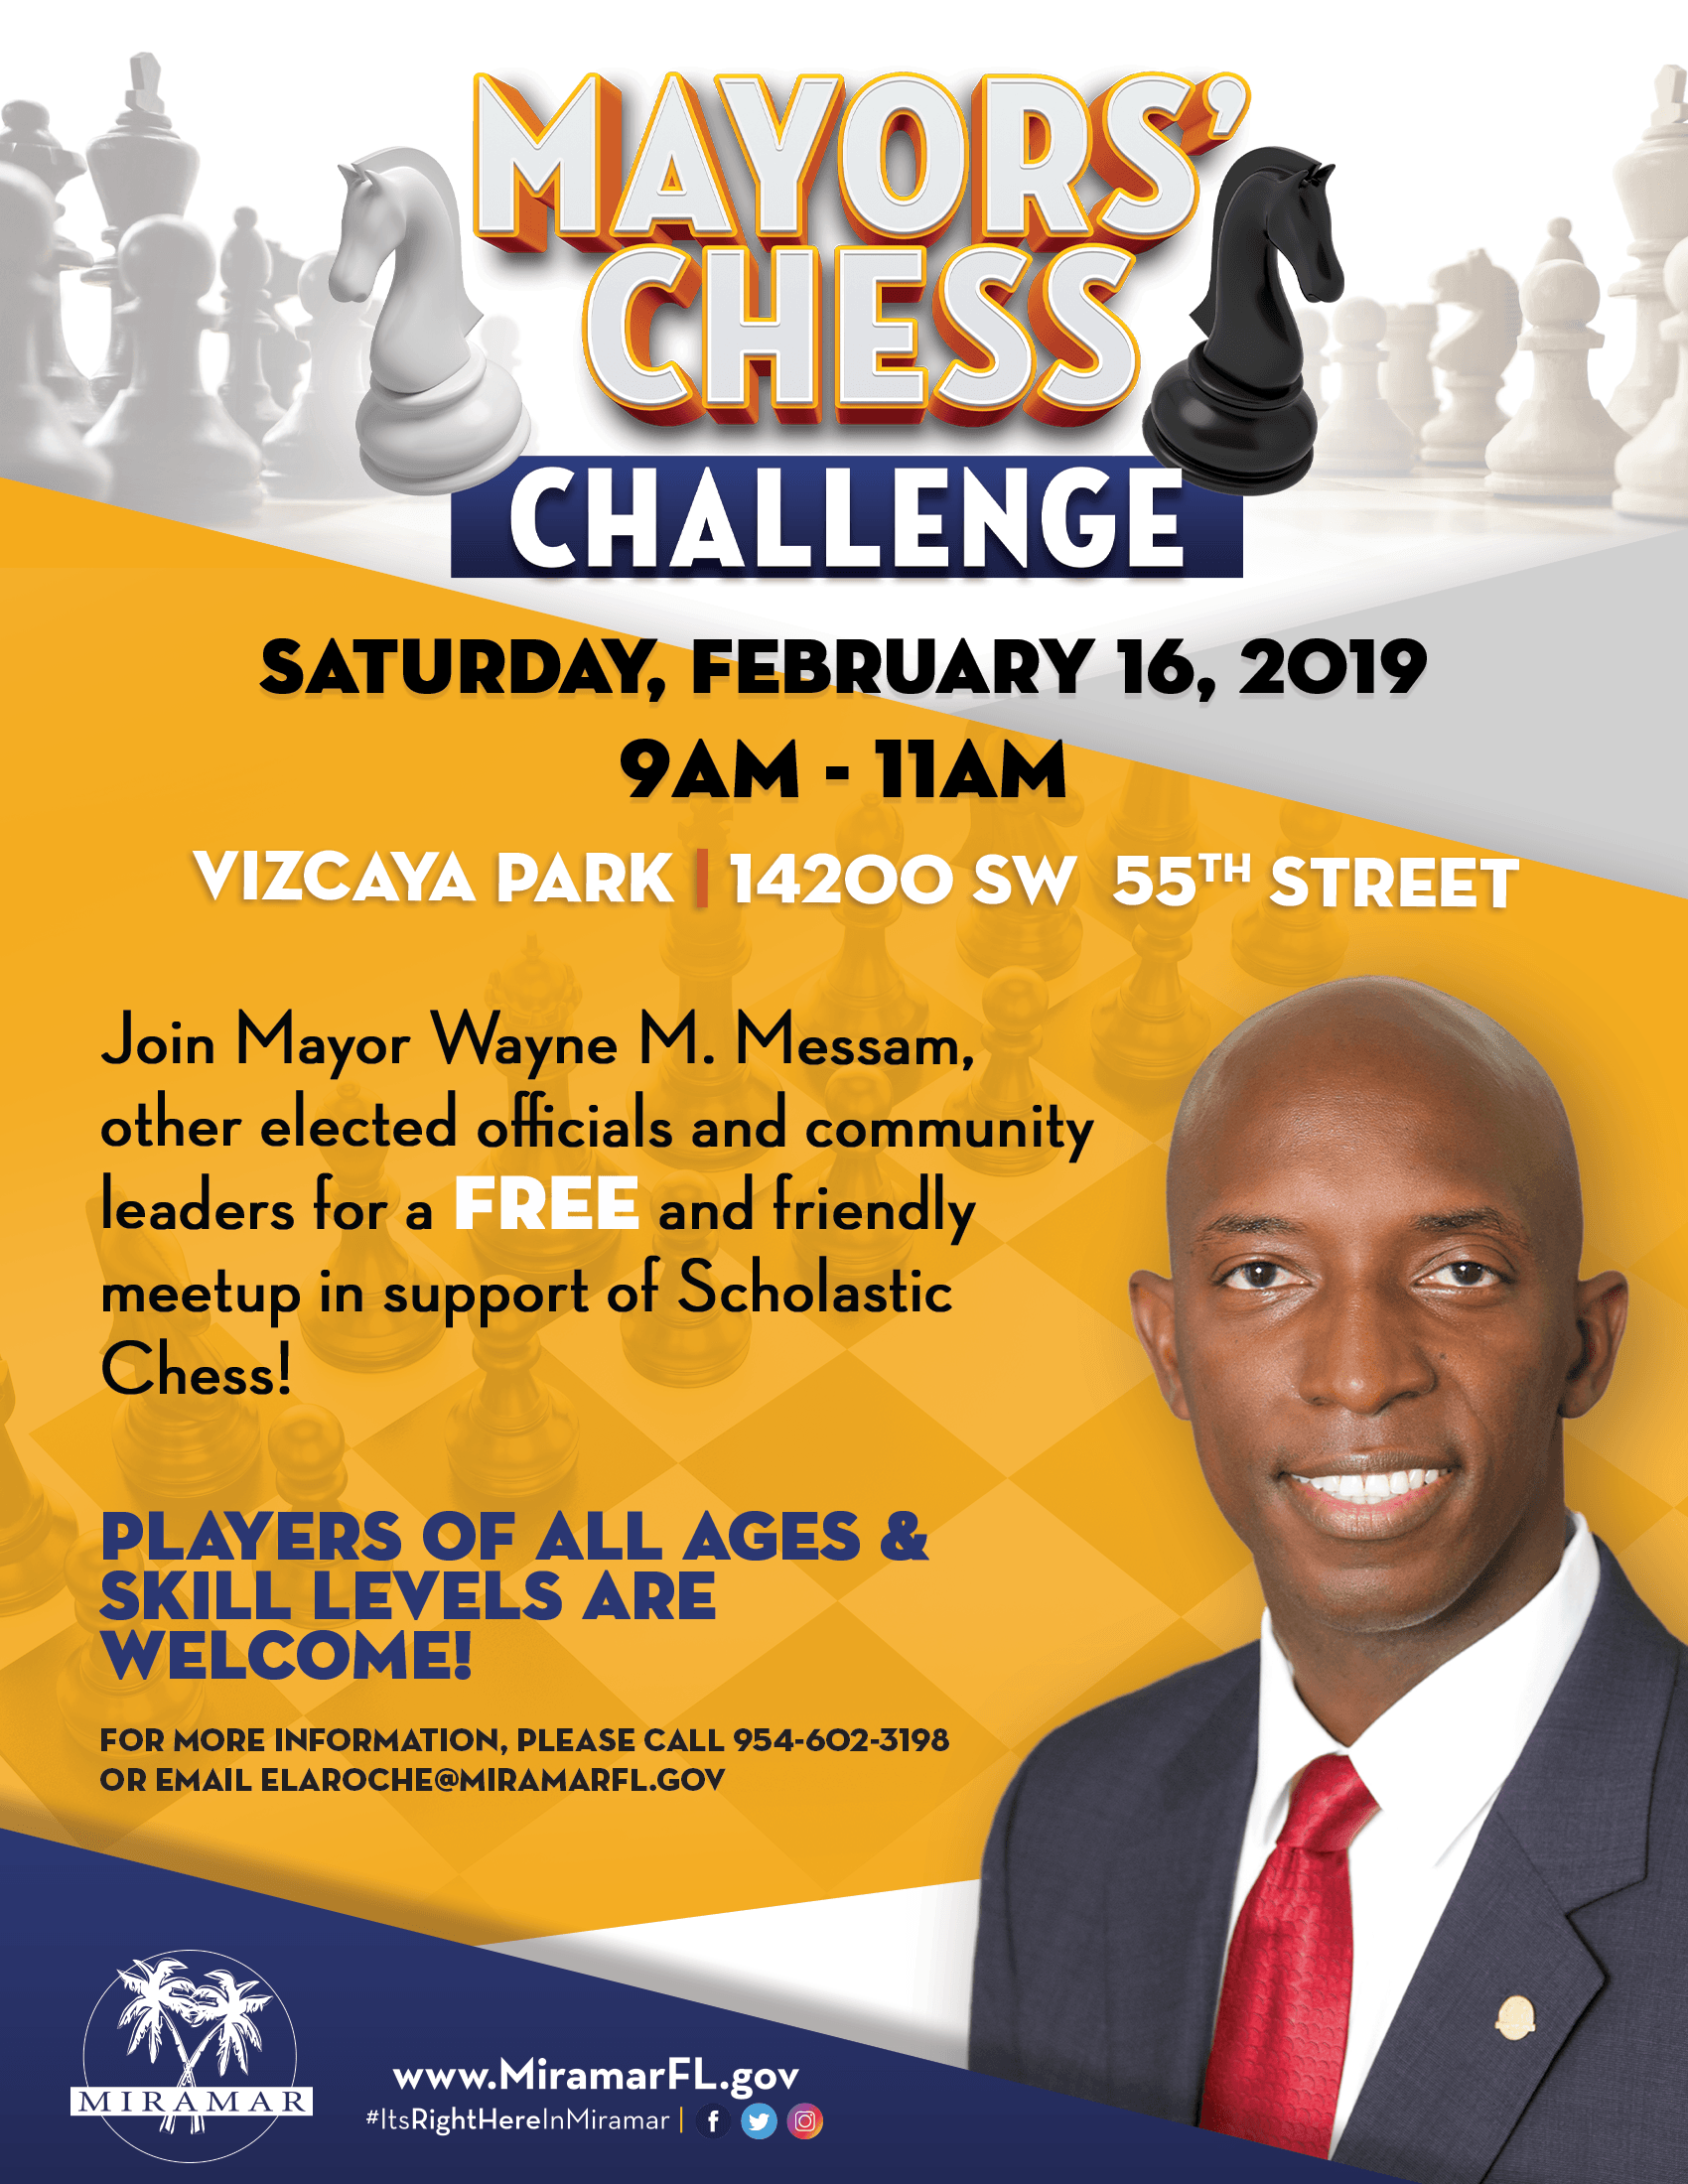 MAYORSCHESS_2019